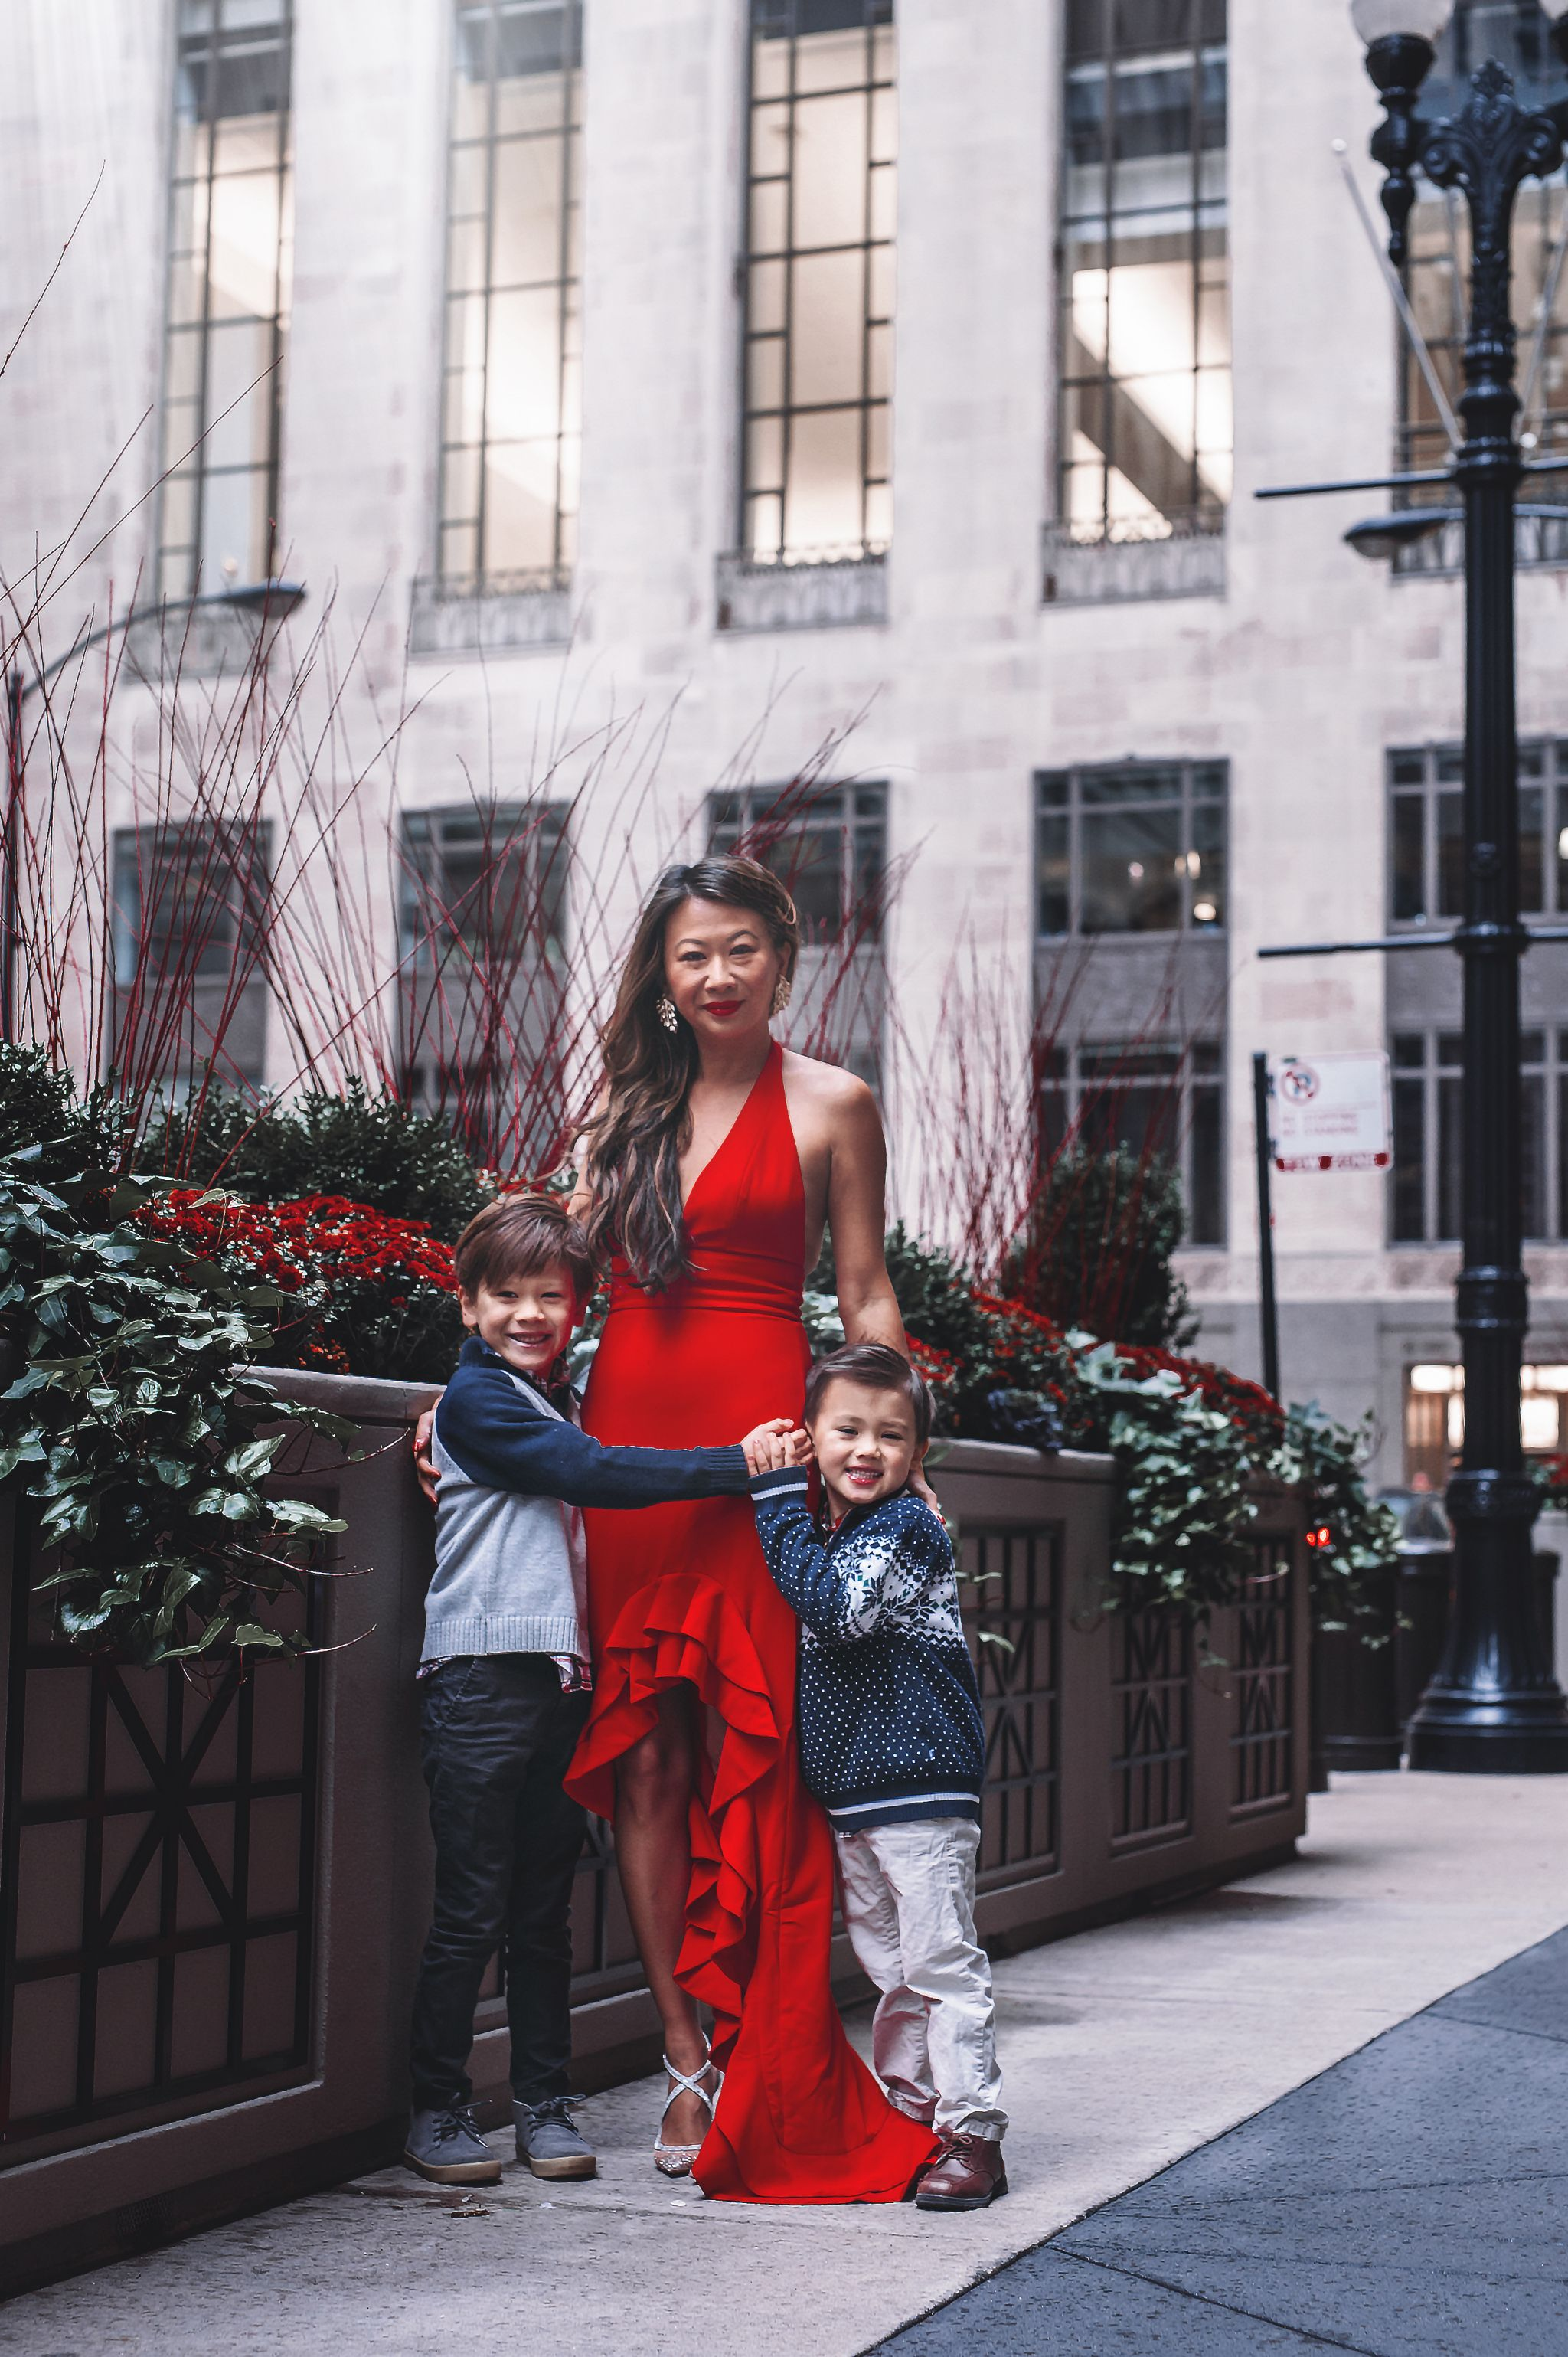 Chicago mom blogger, chicago lifestyle blogger, Brooke Montes, Glimpses by Brooke, Jennifer Worman, Best Holiday photos chicago, Chicago Photographer, Chicago Family Photographer, Best Chicago Photographer